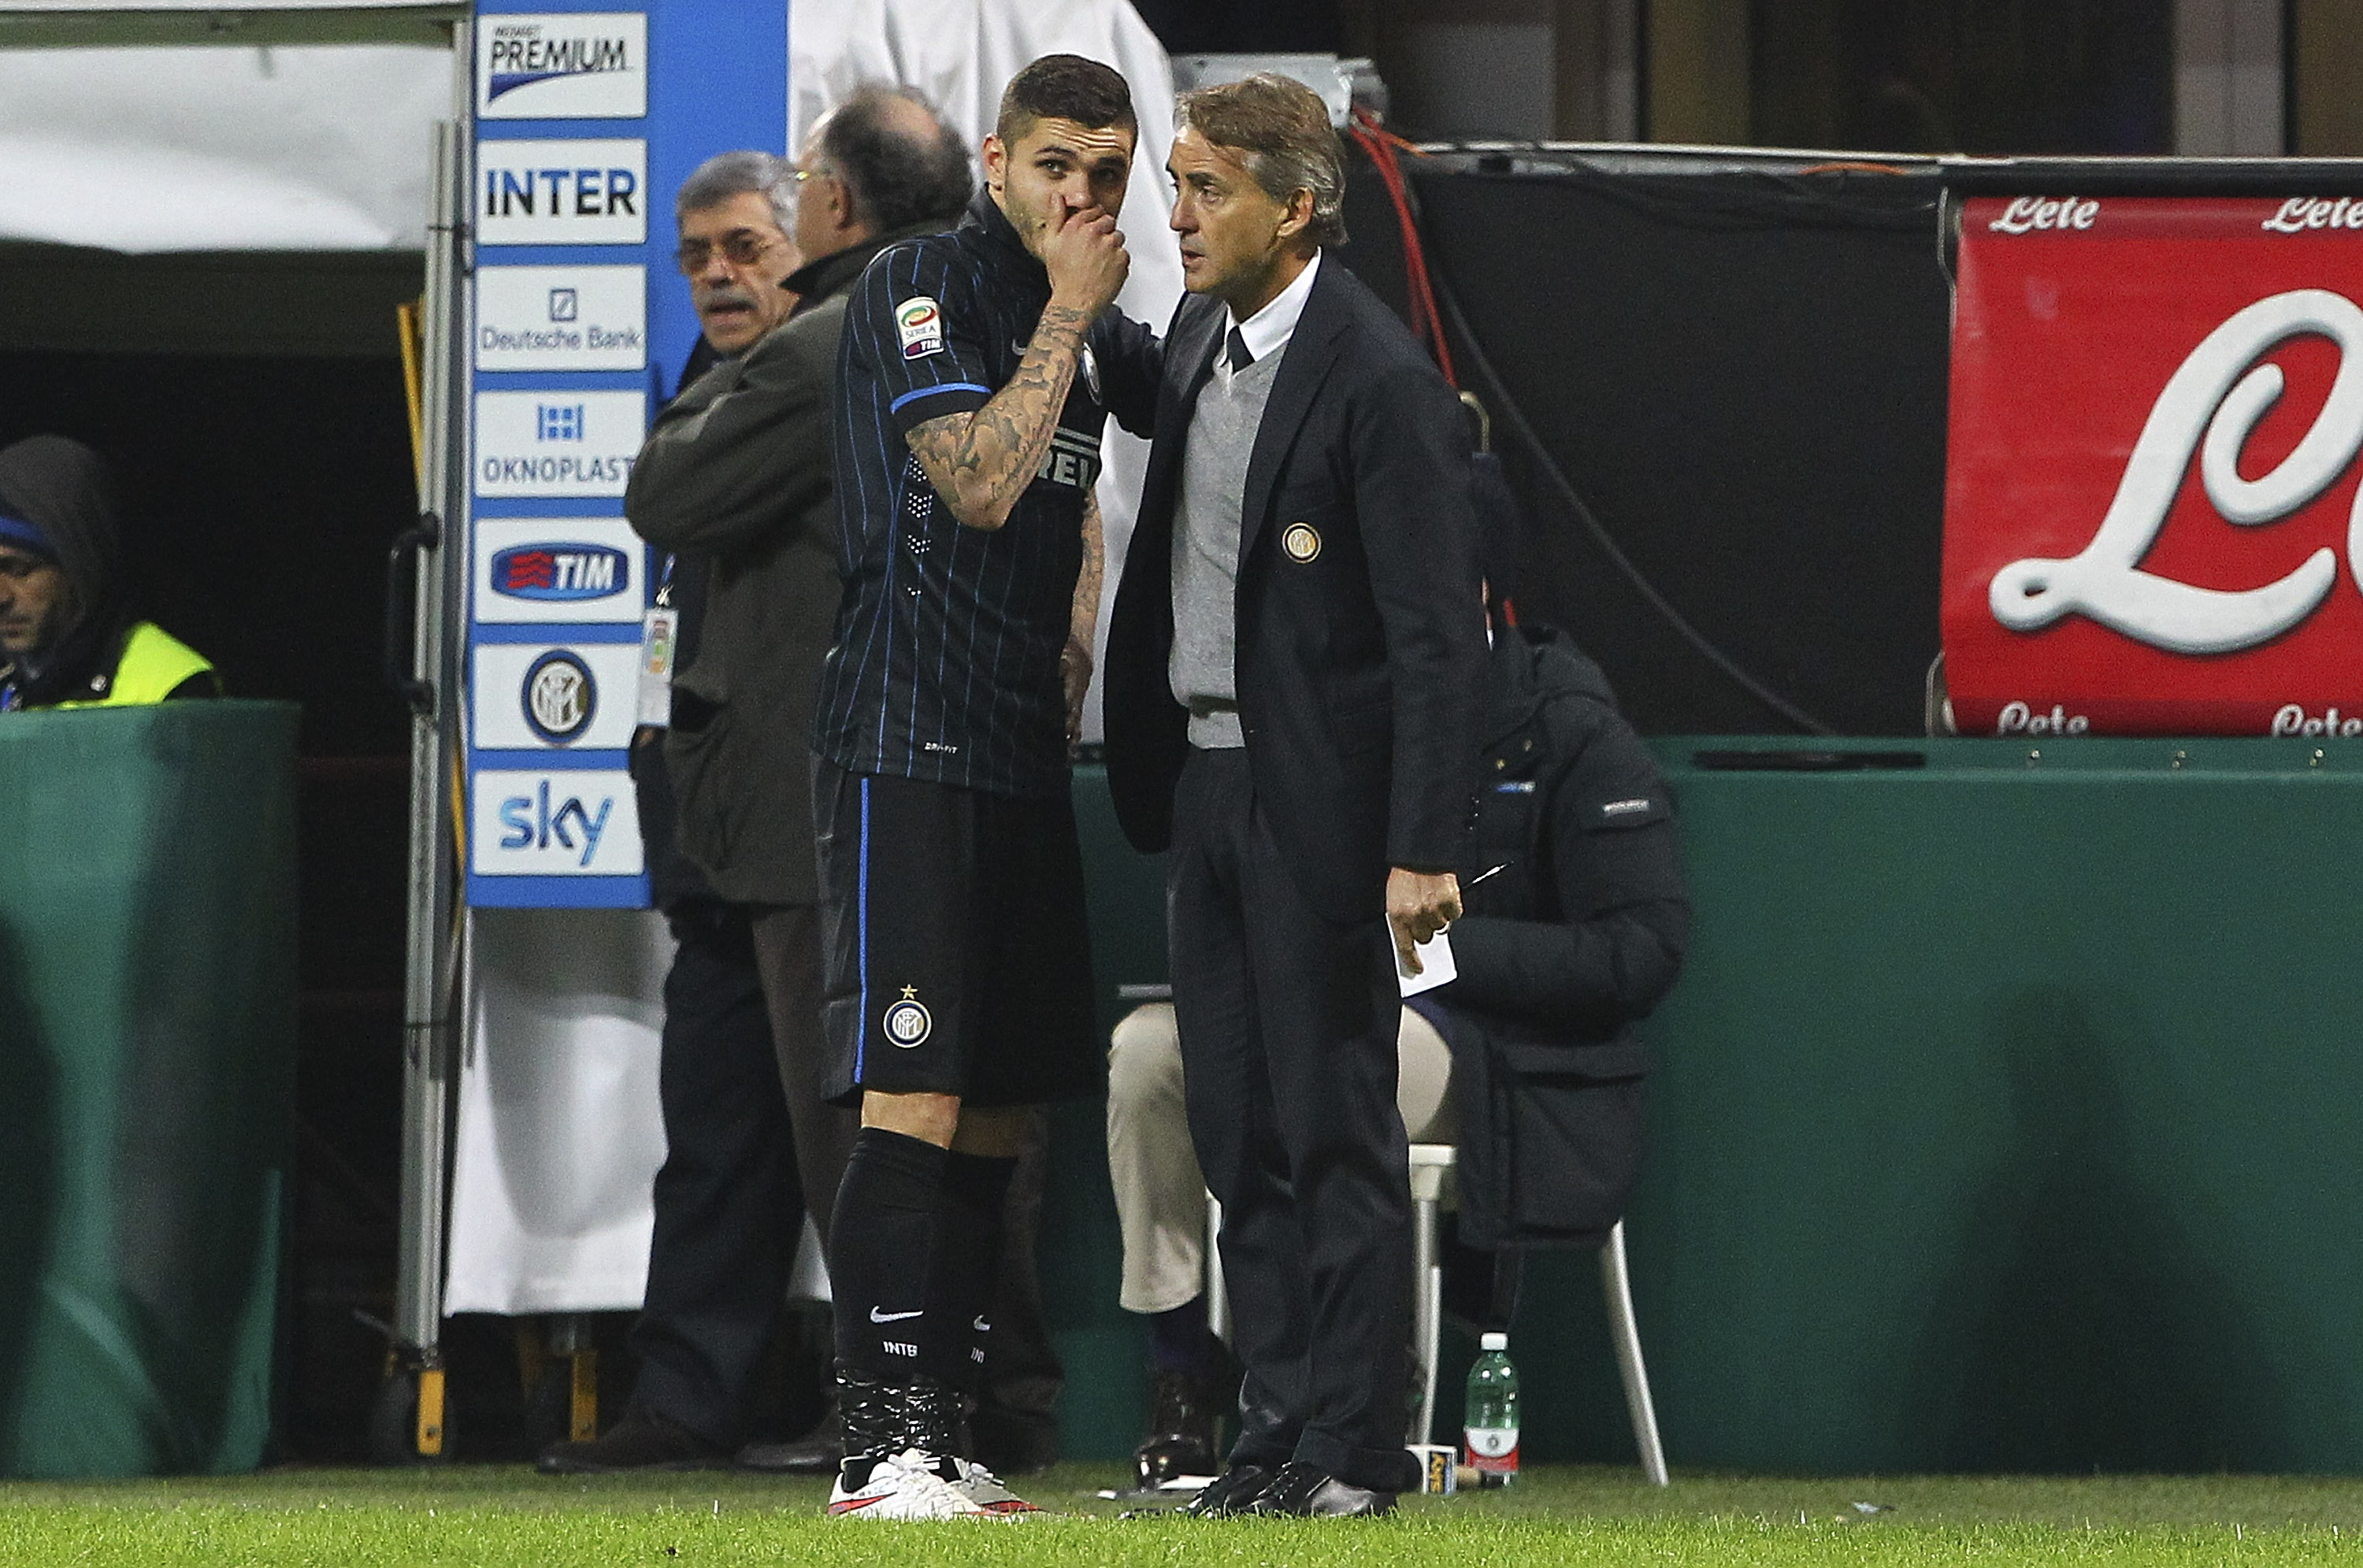 MILAN, ITALY - DECEMBER 07:  Mauro Emanuel Icardi (L) of FC Internazionale Milano speaks to his coach Roberto Mancini (R) during the Serie A match between FC Internazionale Milano and Udinese Calcio at Stadio Giuseppe Meazza on December 7, 2014 in Milan, Italy.  (Photo by Marco Luzzani/Getty Images)